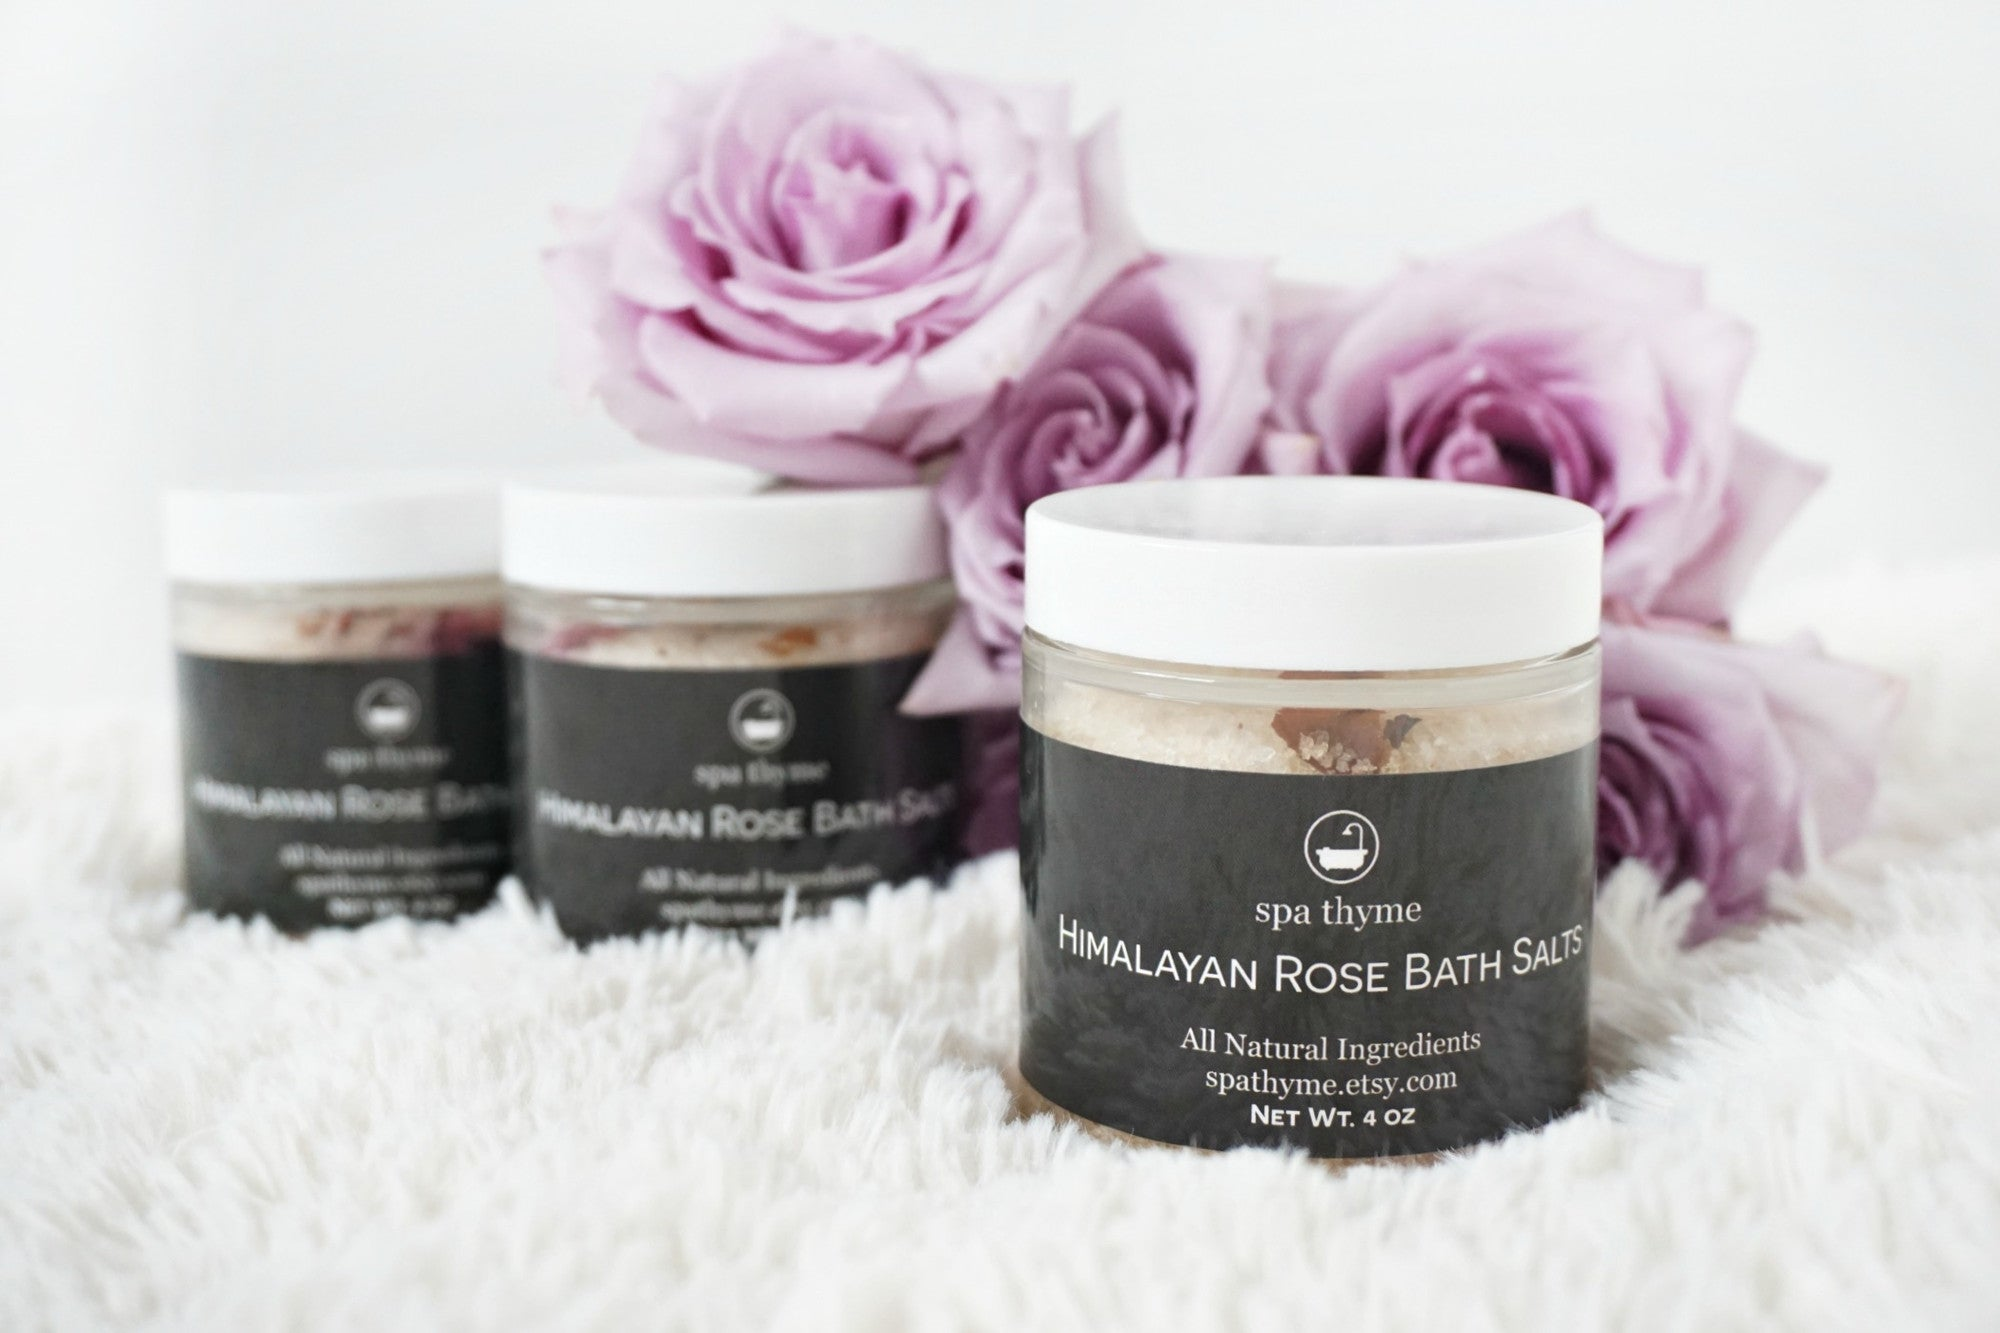 All made by small businesses